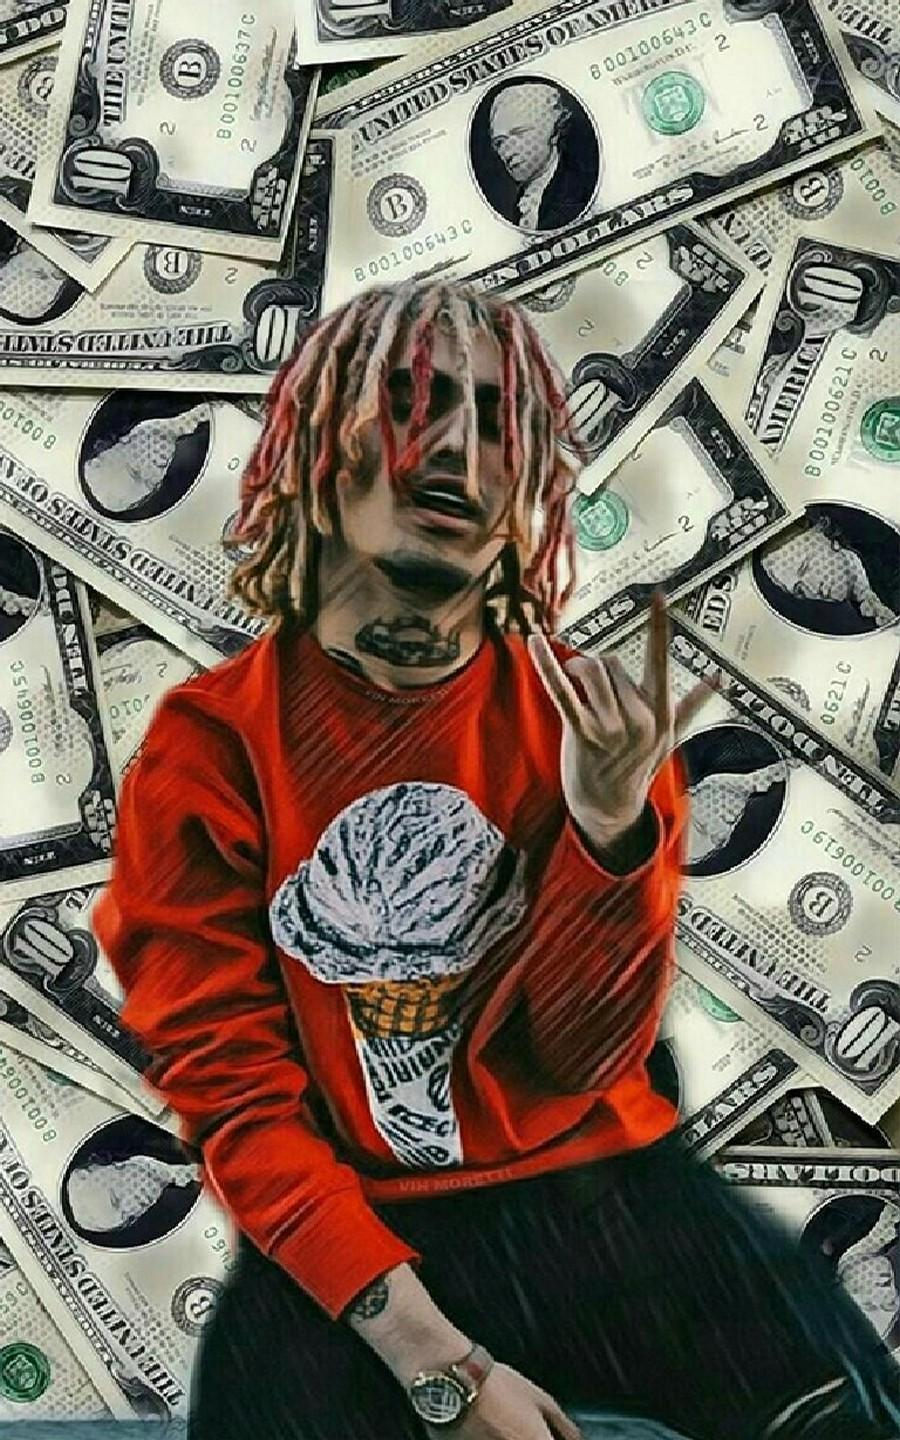 900x1440 Lil Pump lock screen Wallpapers for Android - APK Download